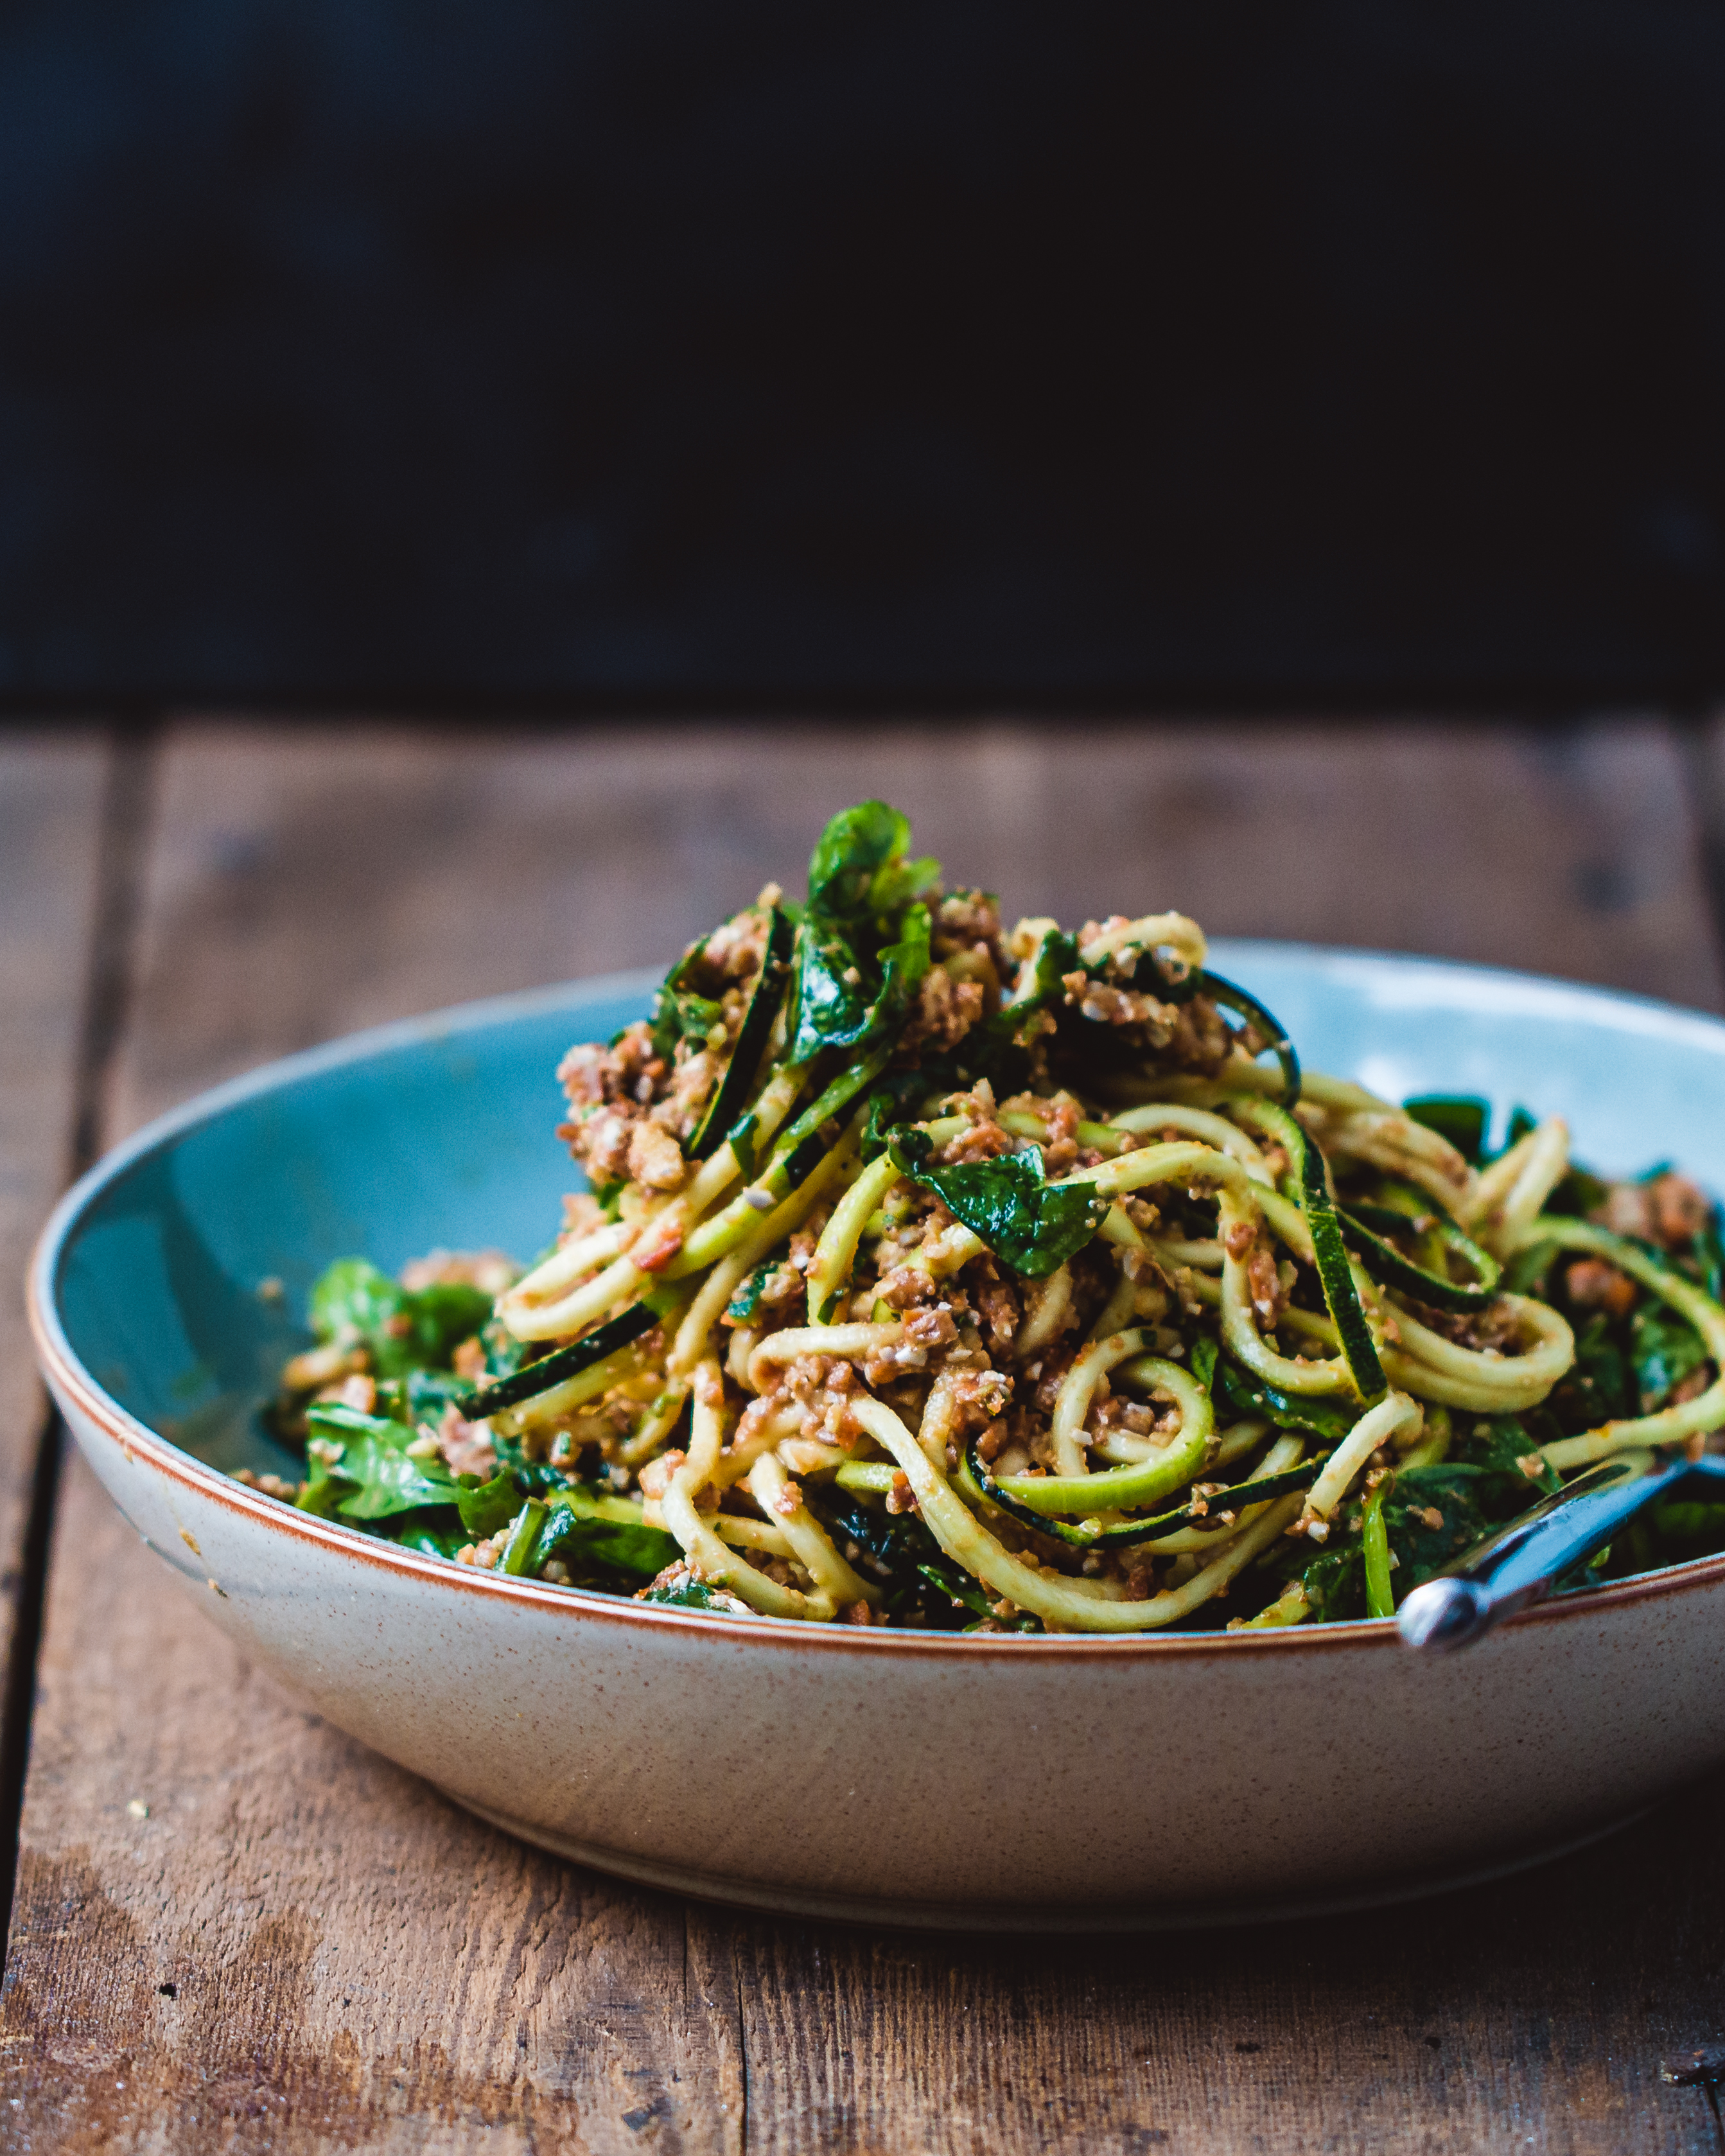 Raw vegan zucchini spaghetti bolognese in a blue and white bowl on a wooden surface